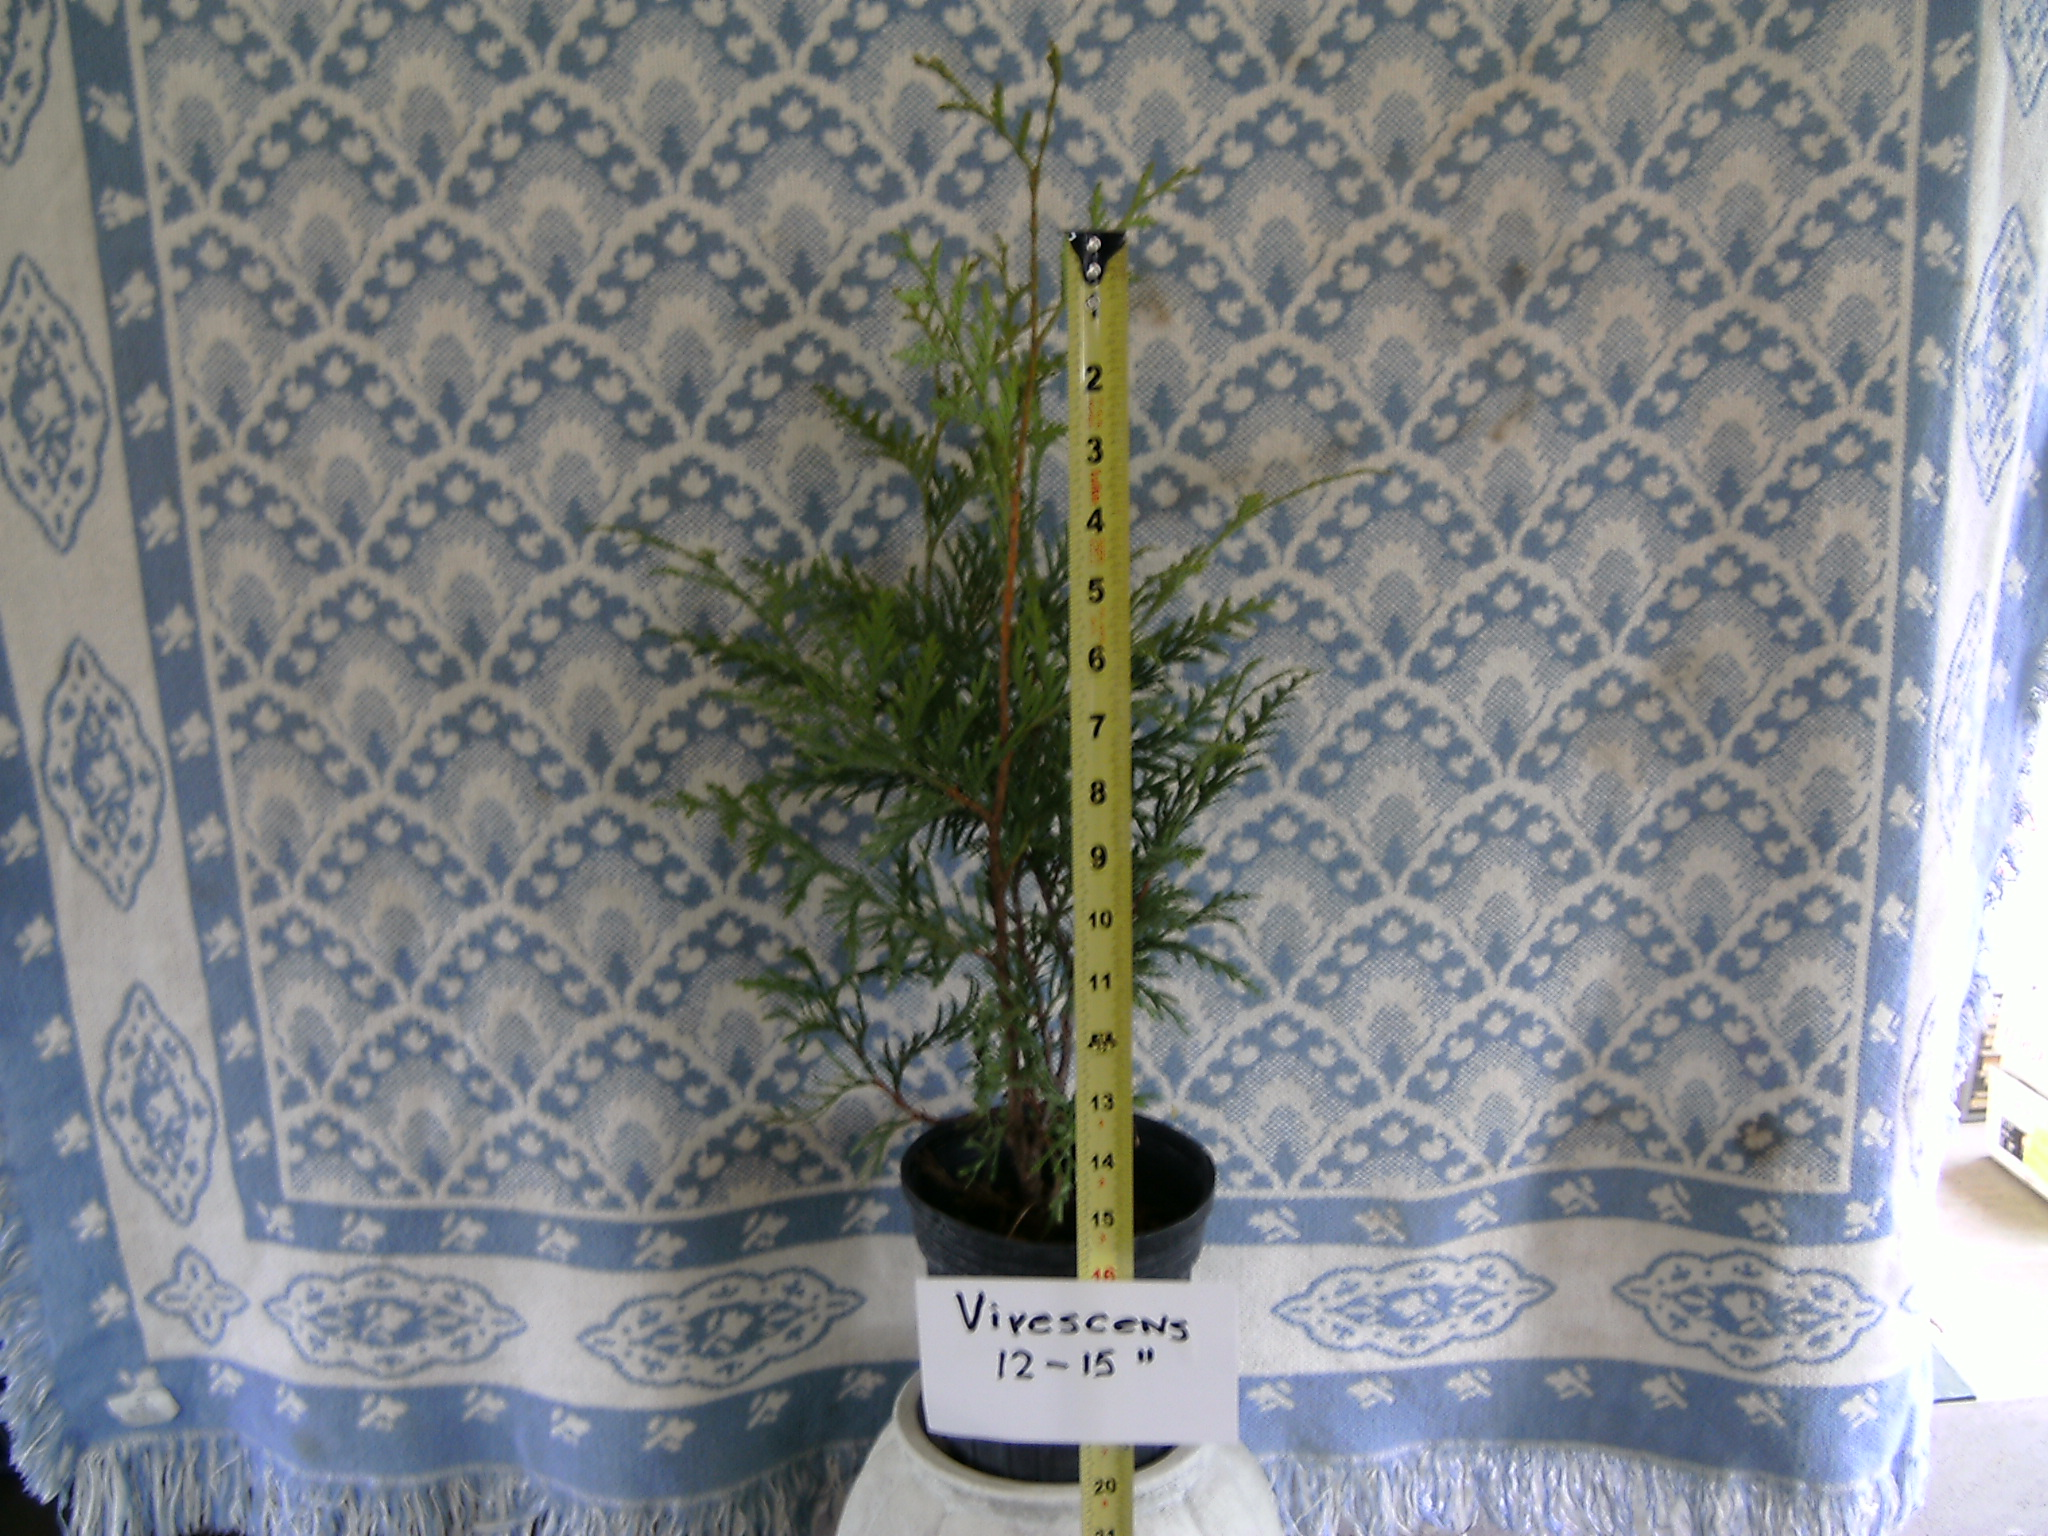 Our 12-15 inch tall Virescens Arborvitae Liner